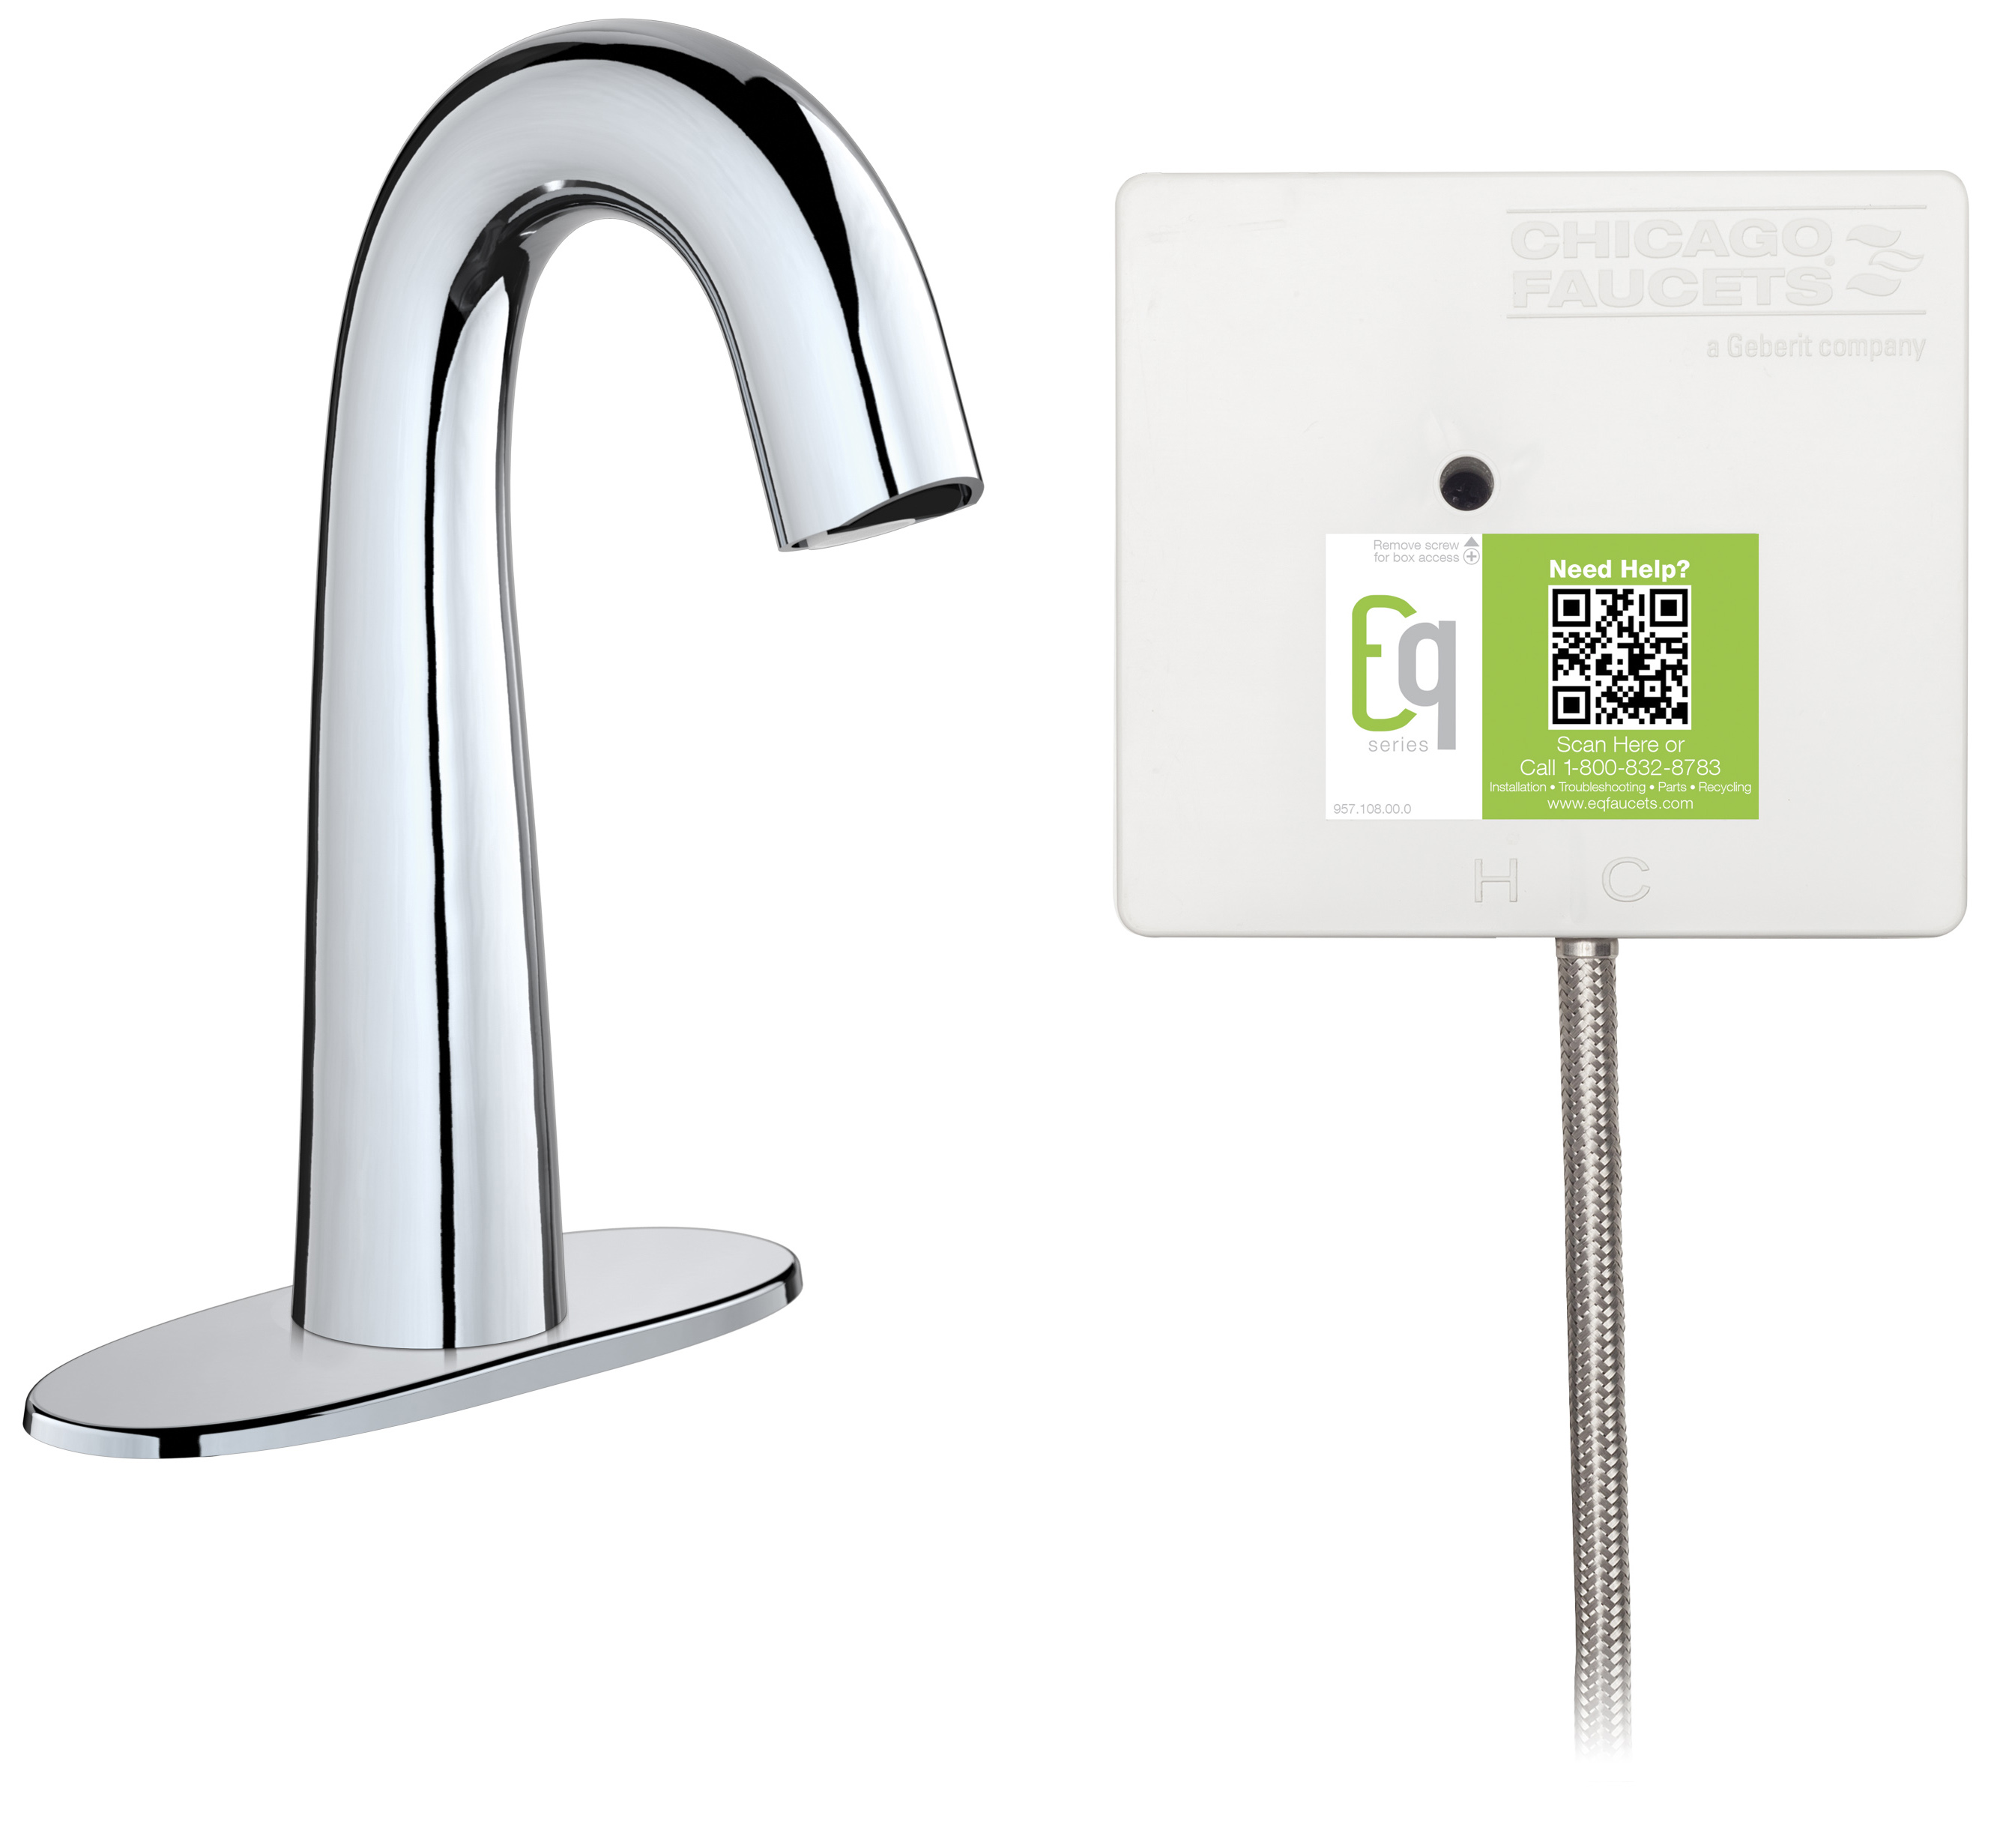 Delta Faucet R2910 Mixlf Commercial Mechanical Mixing: Touch-free Faucet With Plug-and-play Installation